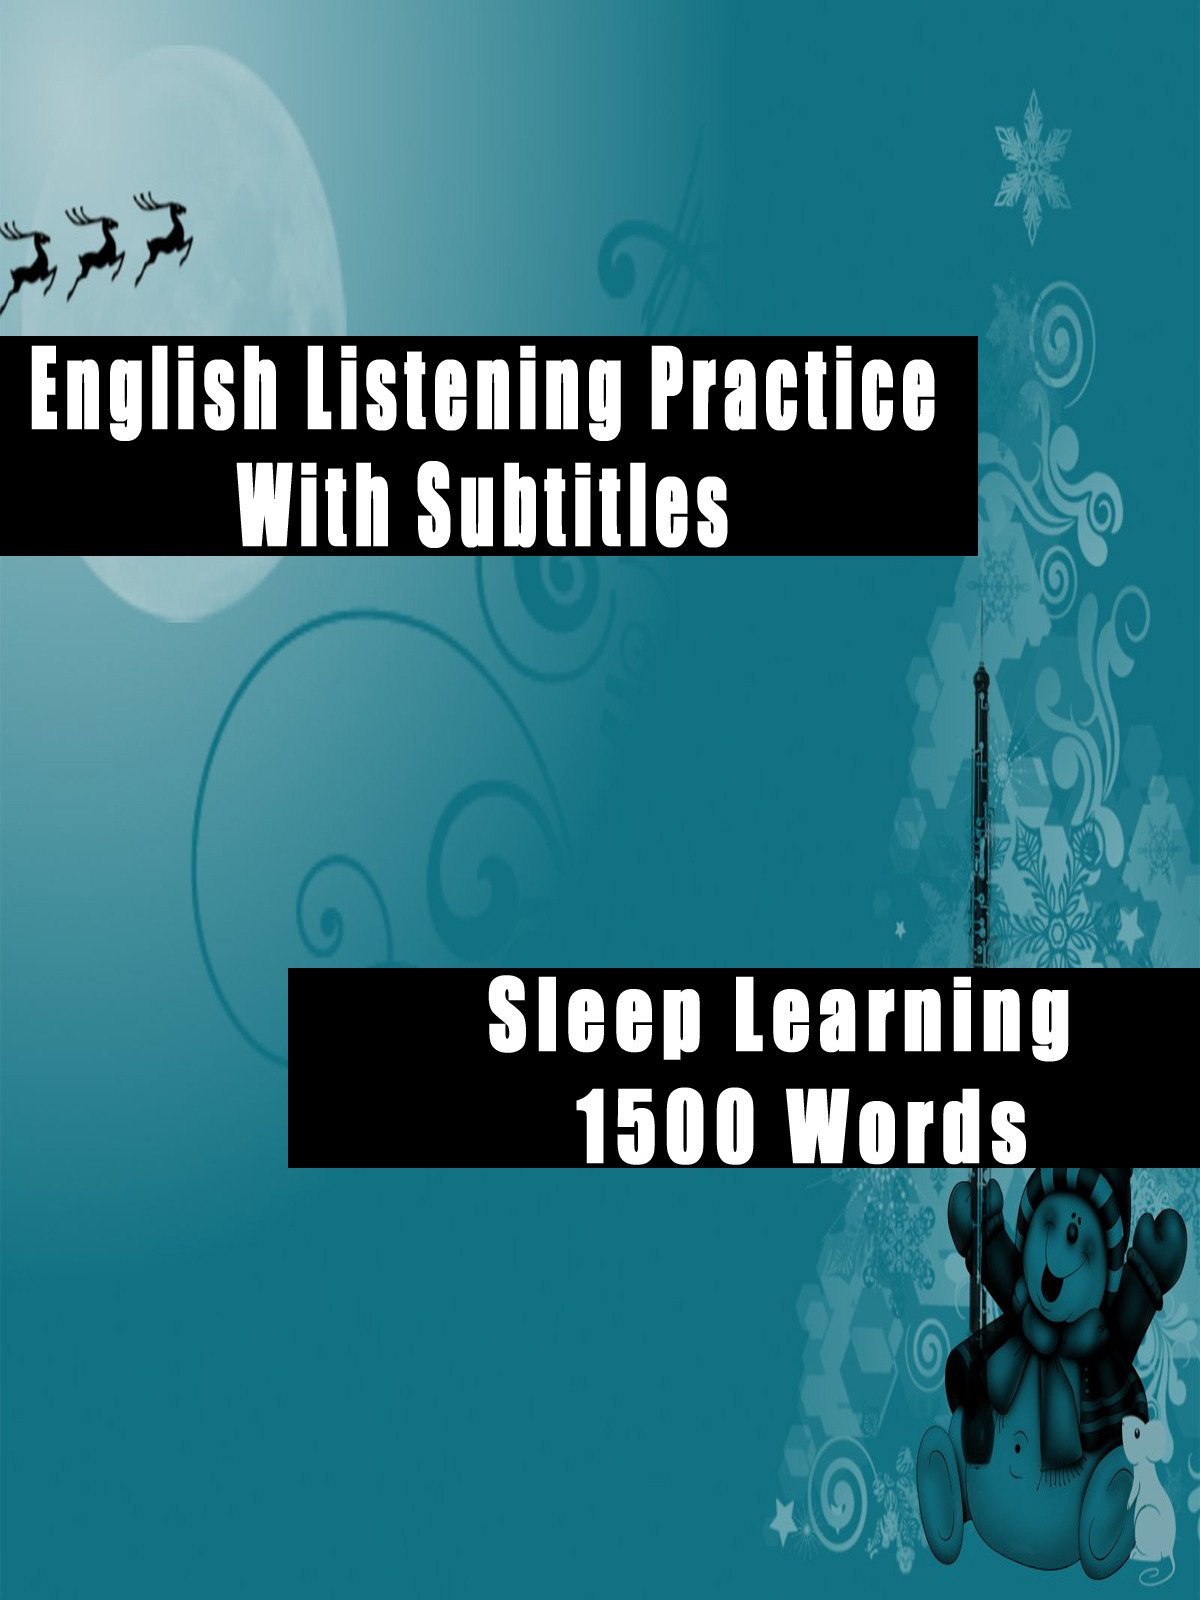 English Listening Practice, With Subtitles